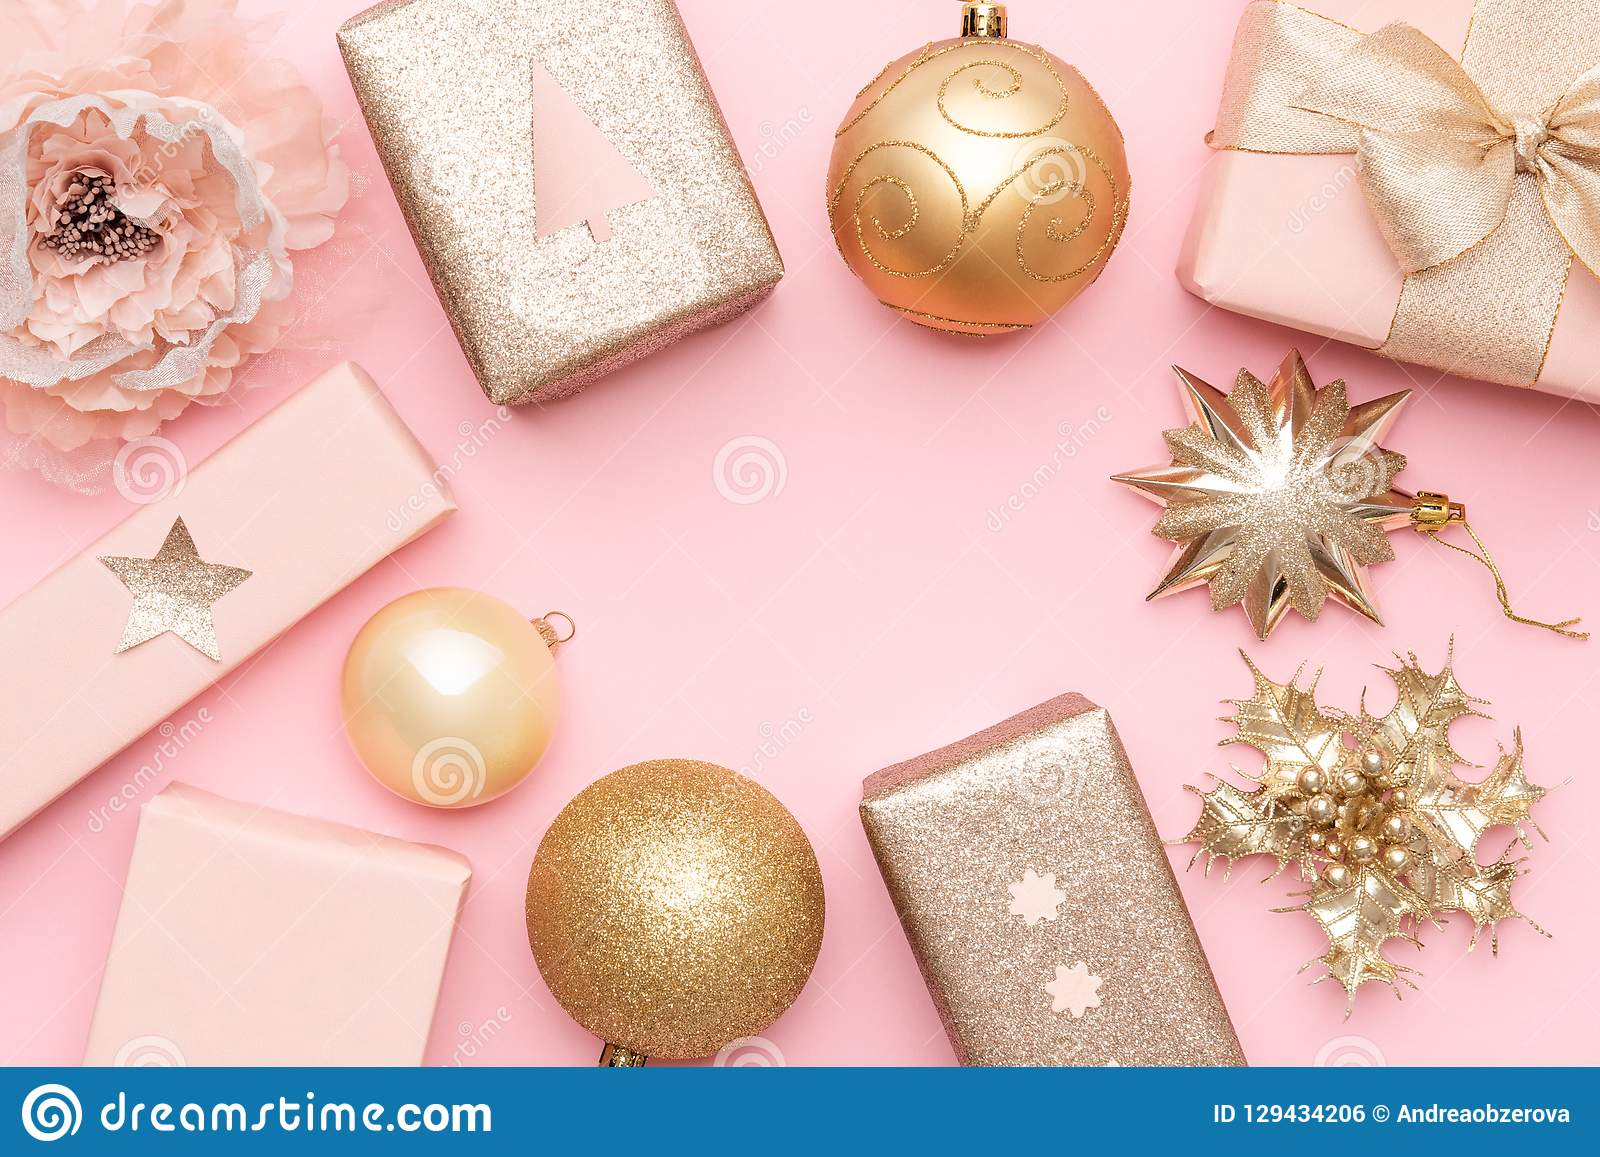 Pink And Gold Christmas Gifts Isolated On Pastel Pink Background